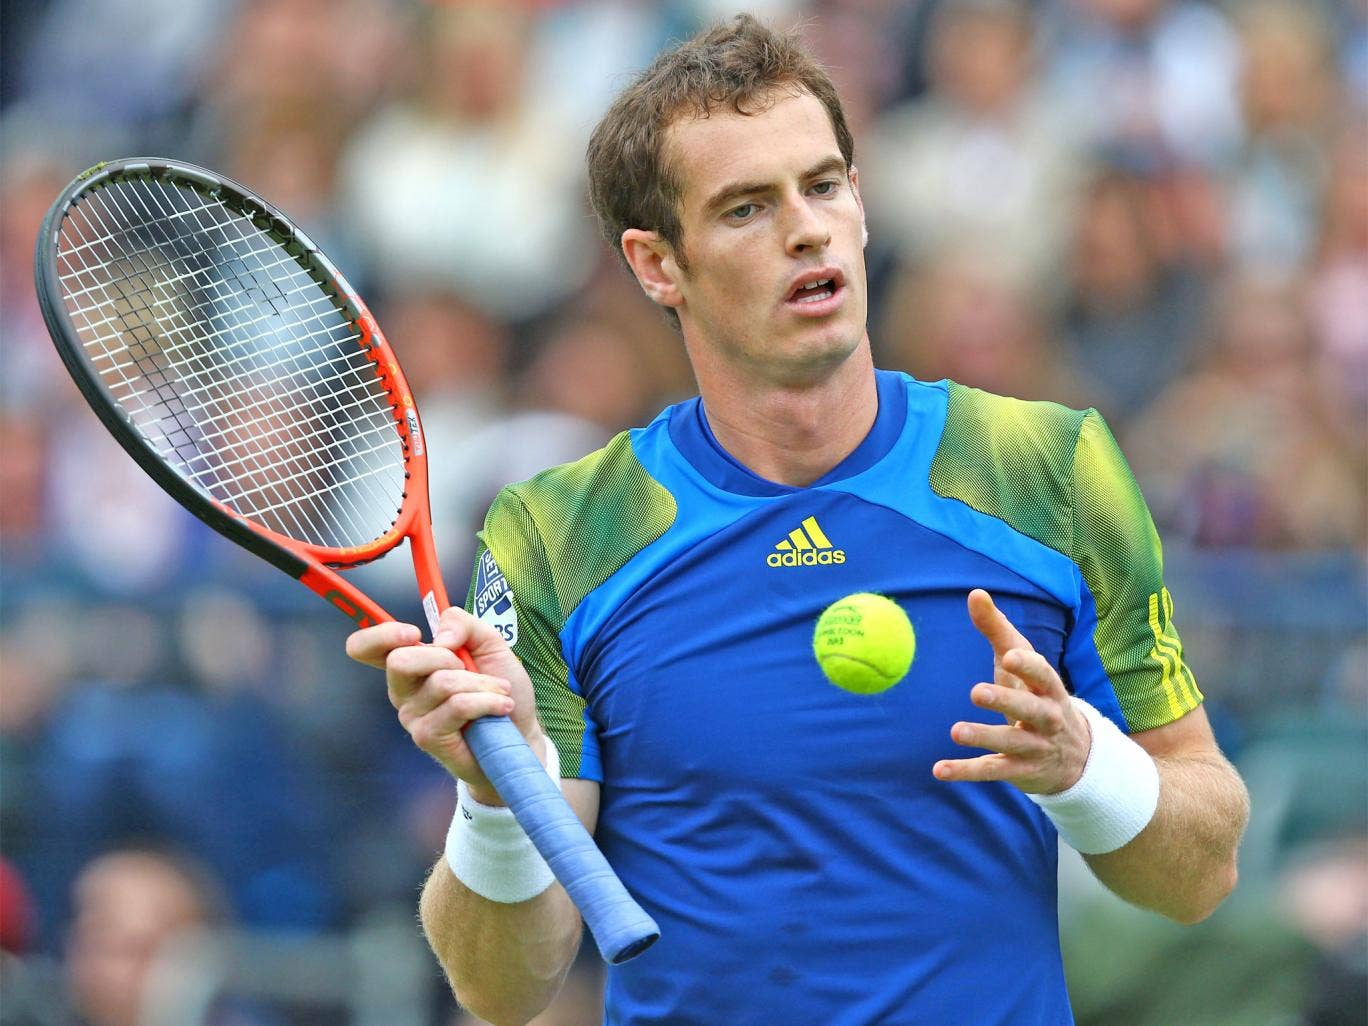 Murray endured a frustrating day of disruptions